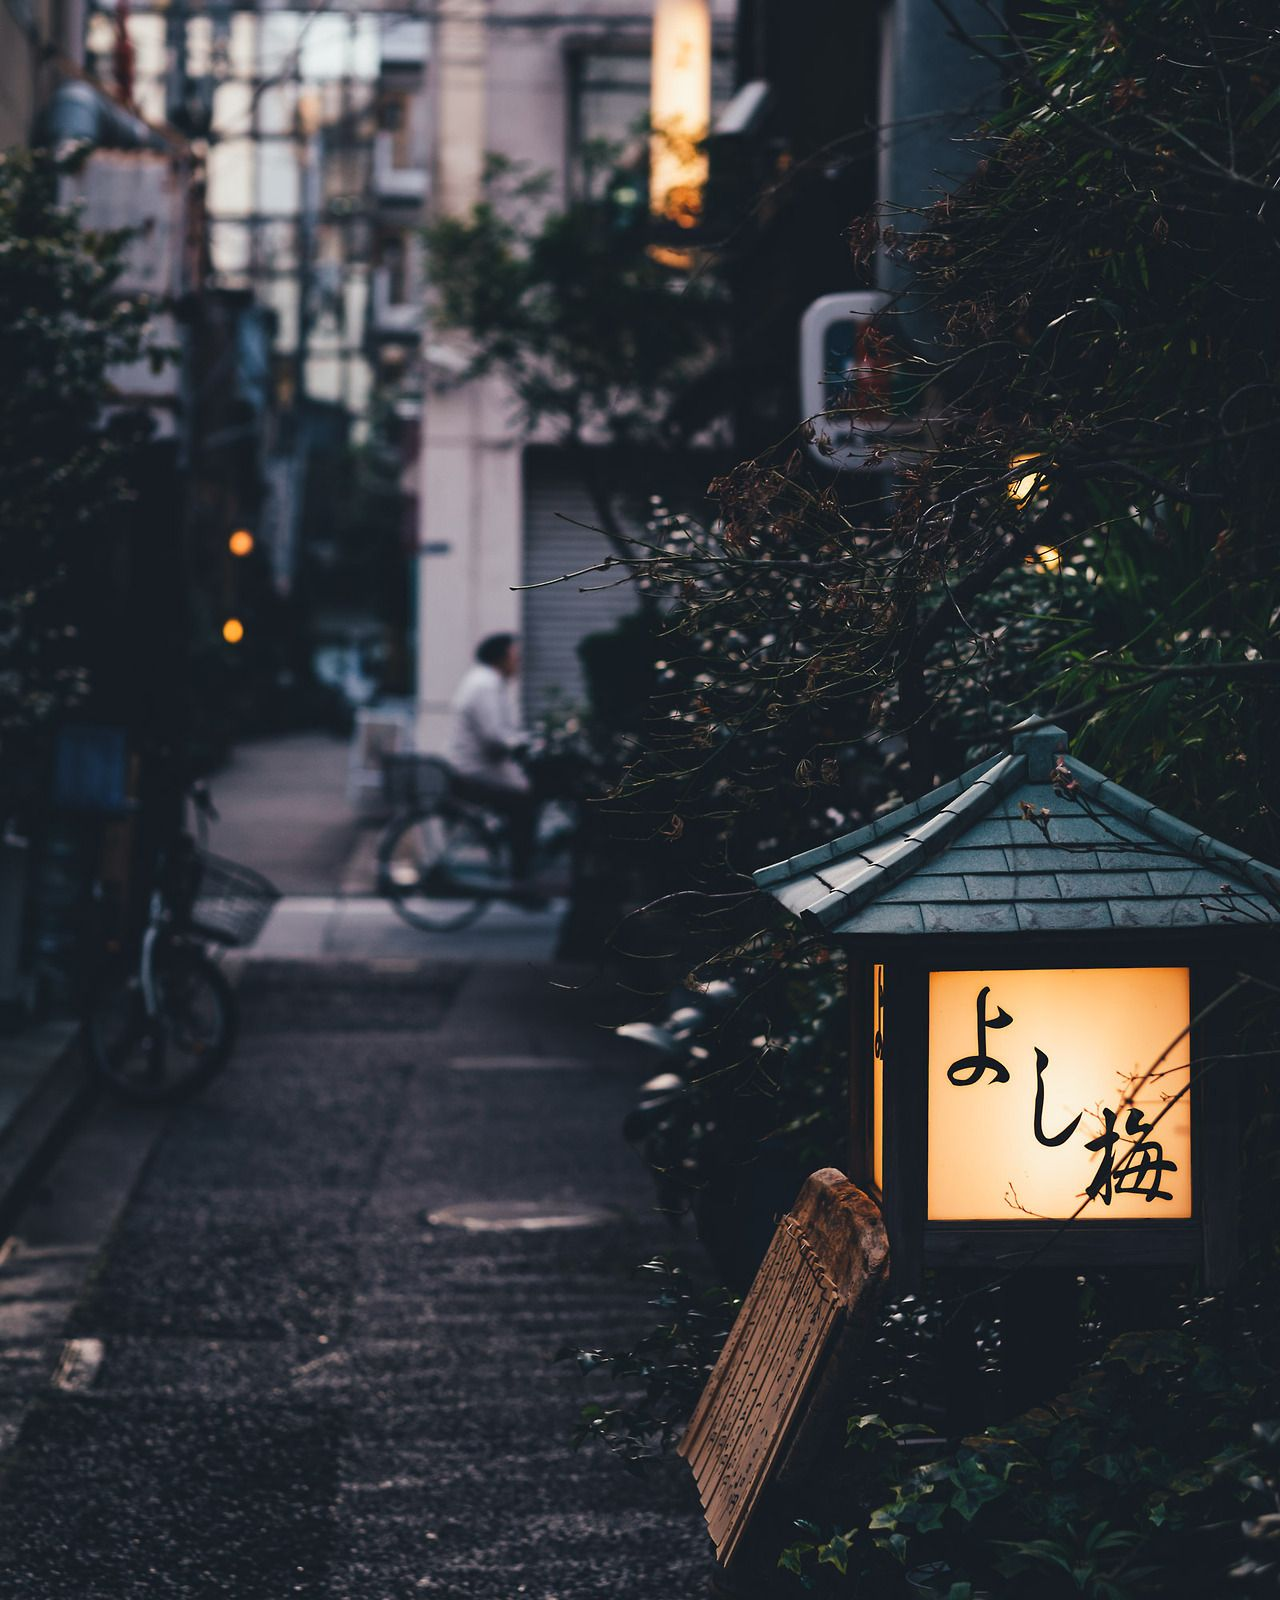 Everyday Life In Tokyo Iphone Wallpaper Japan Aesthetic Japan